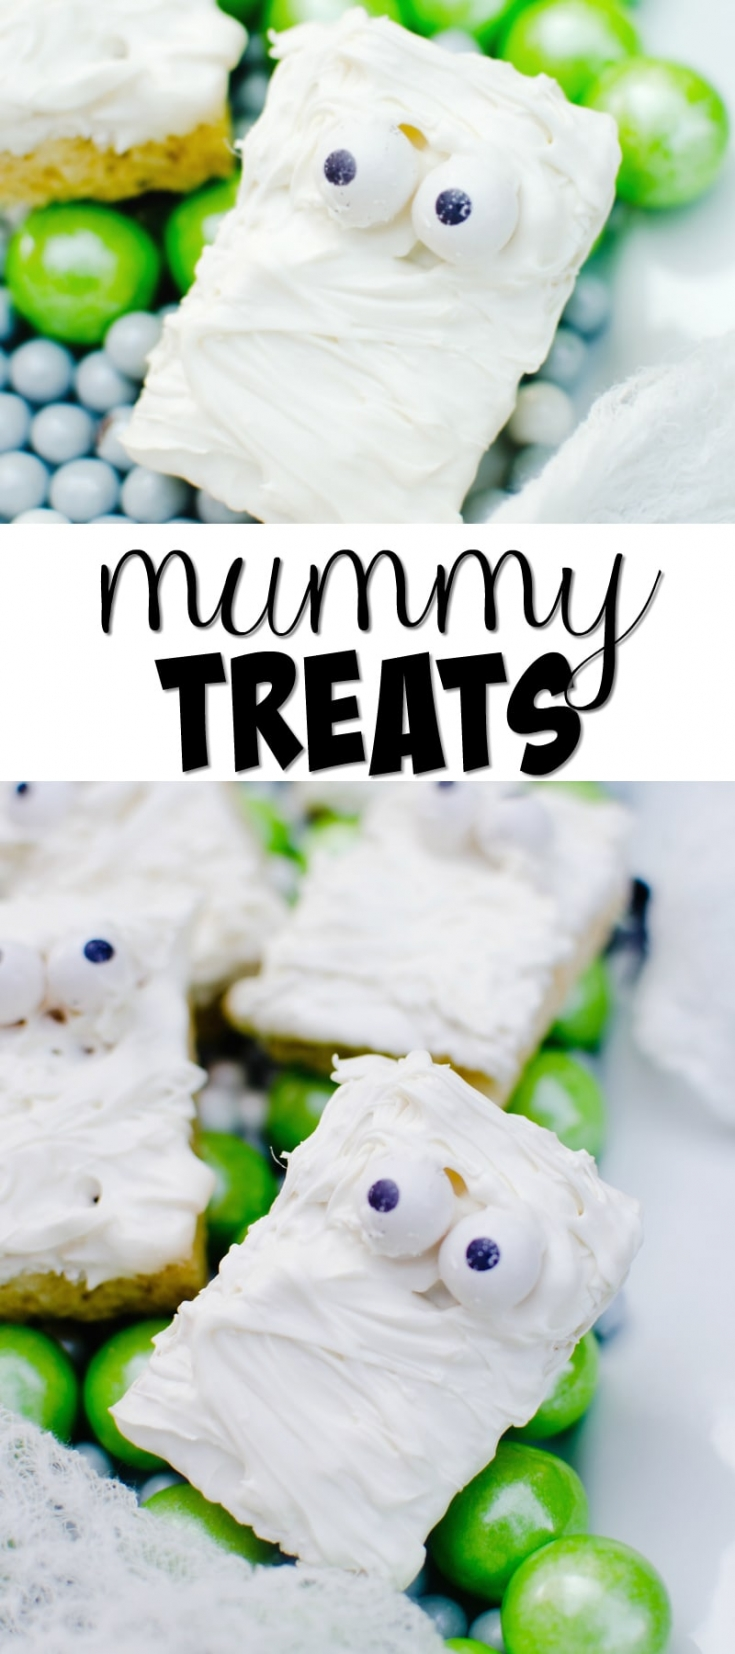 These Mummy Treats are a fun and easy treat to make up for Halloween parties or class treats.